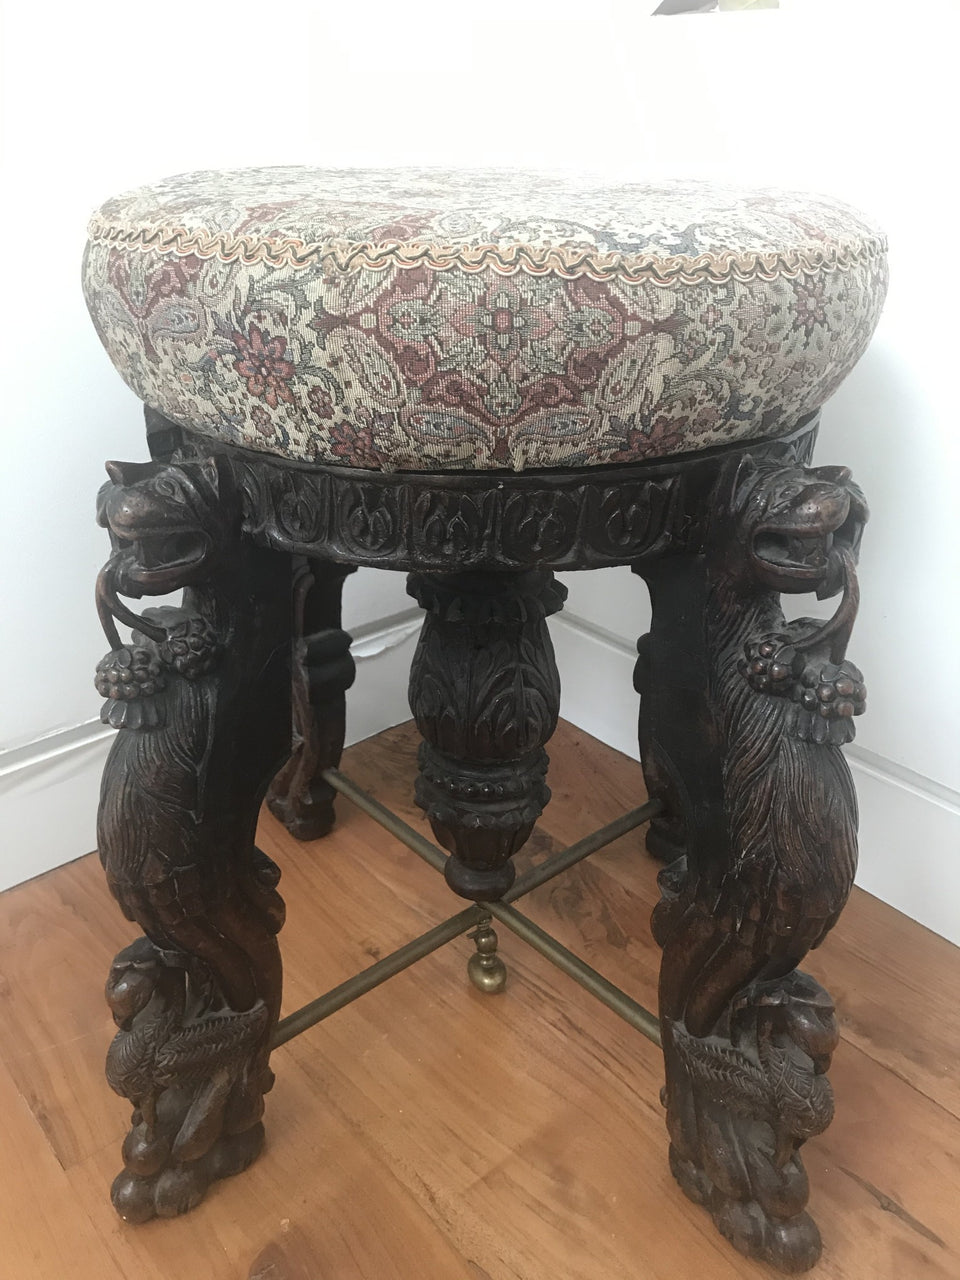 oriental stool with upholstered seat and four heavily carved legs with lions and birds and a carved centre column with brass stretchers